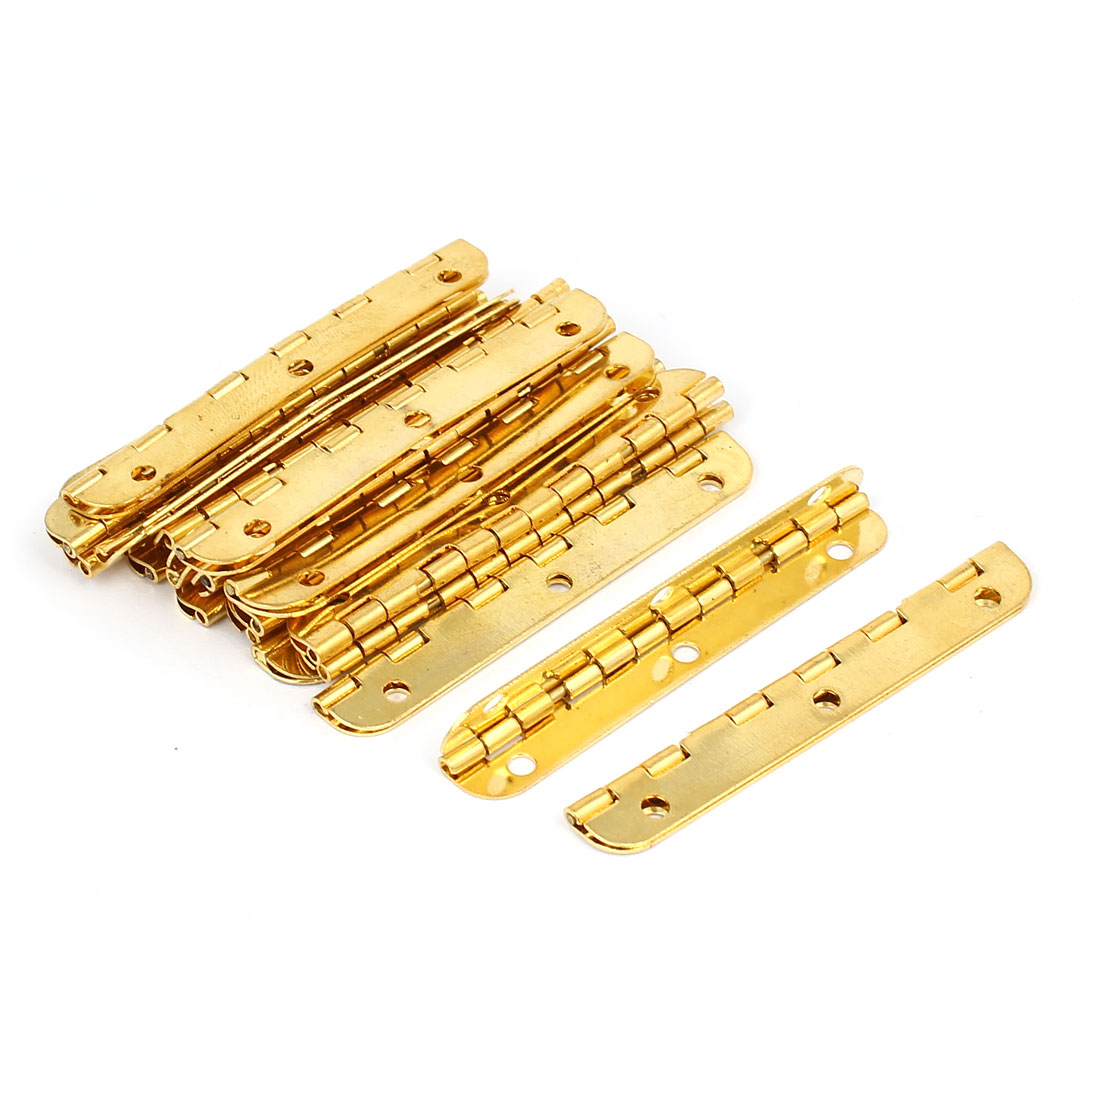 65mmx13mm Rectangle Shape Folding Hinge 20pcs for Cabinet Door Jewelry Box